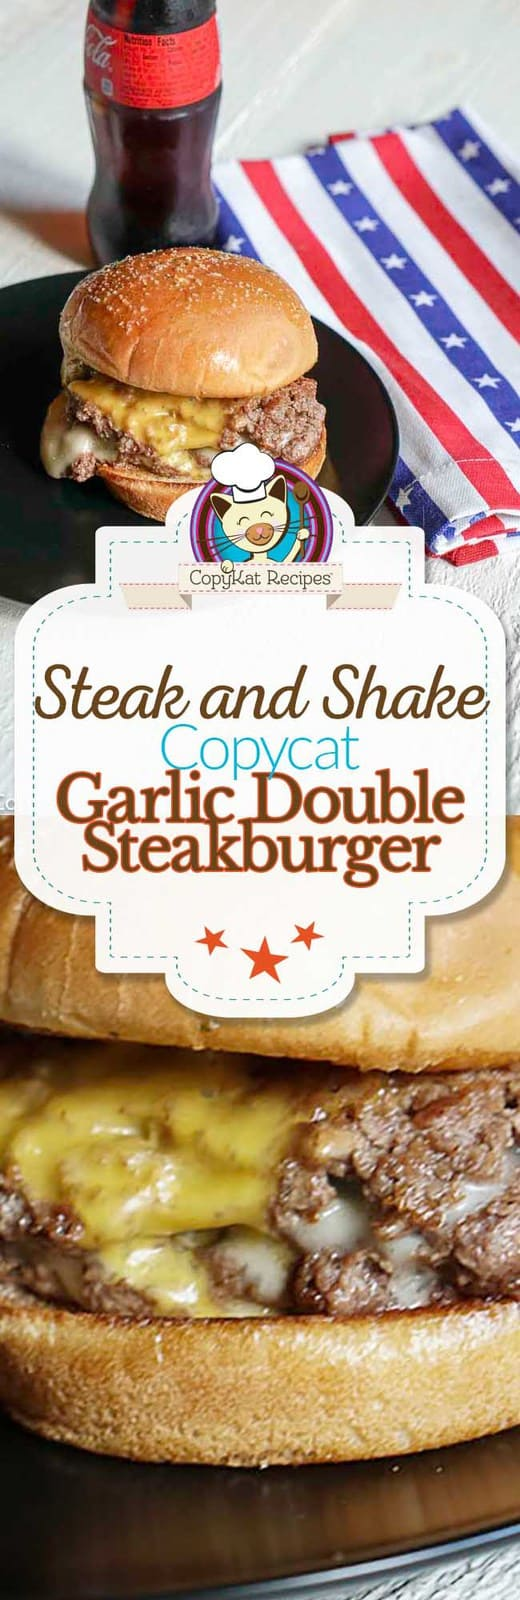 You can recreate the famous Steak and Shake Double Garlic Burger at home with this easy copycat recipe.